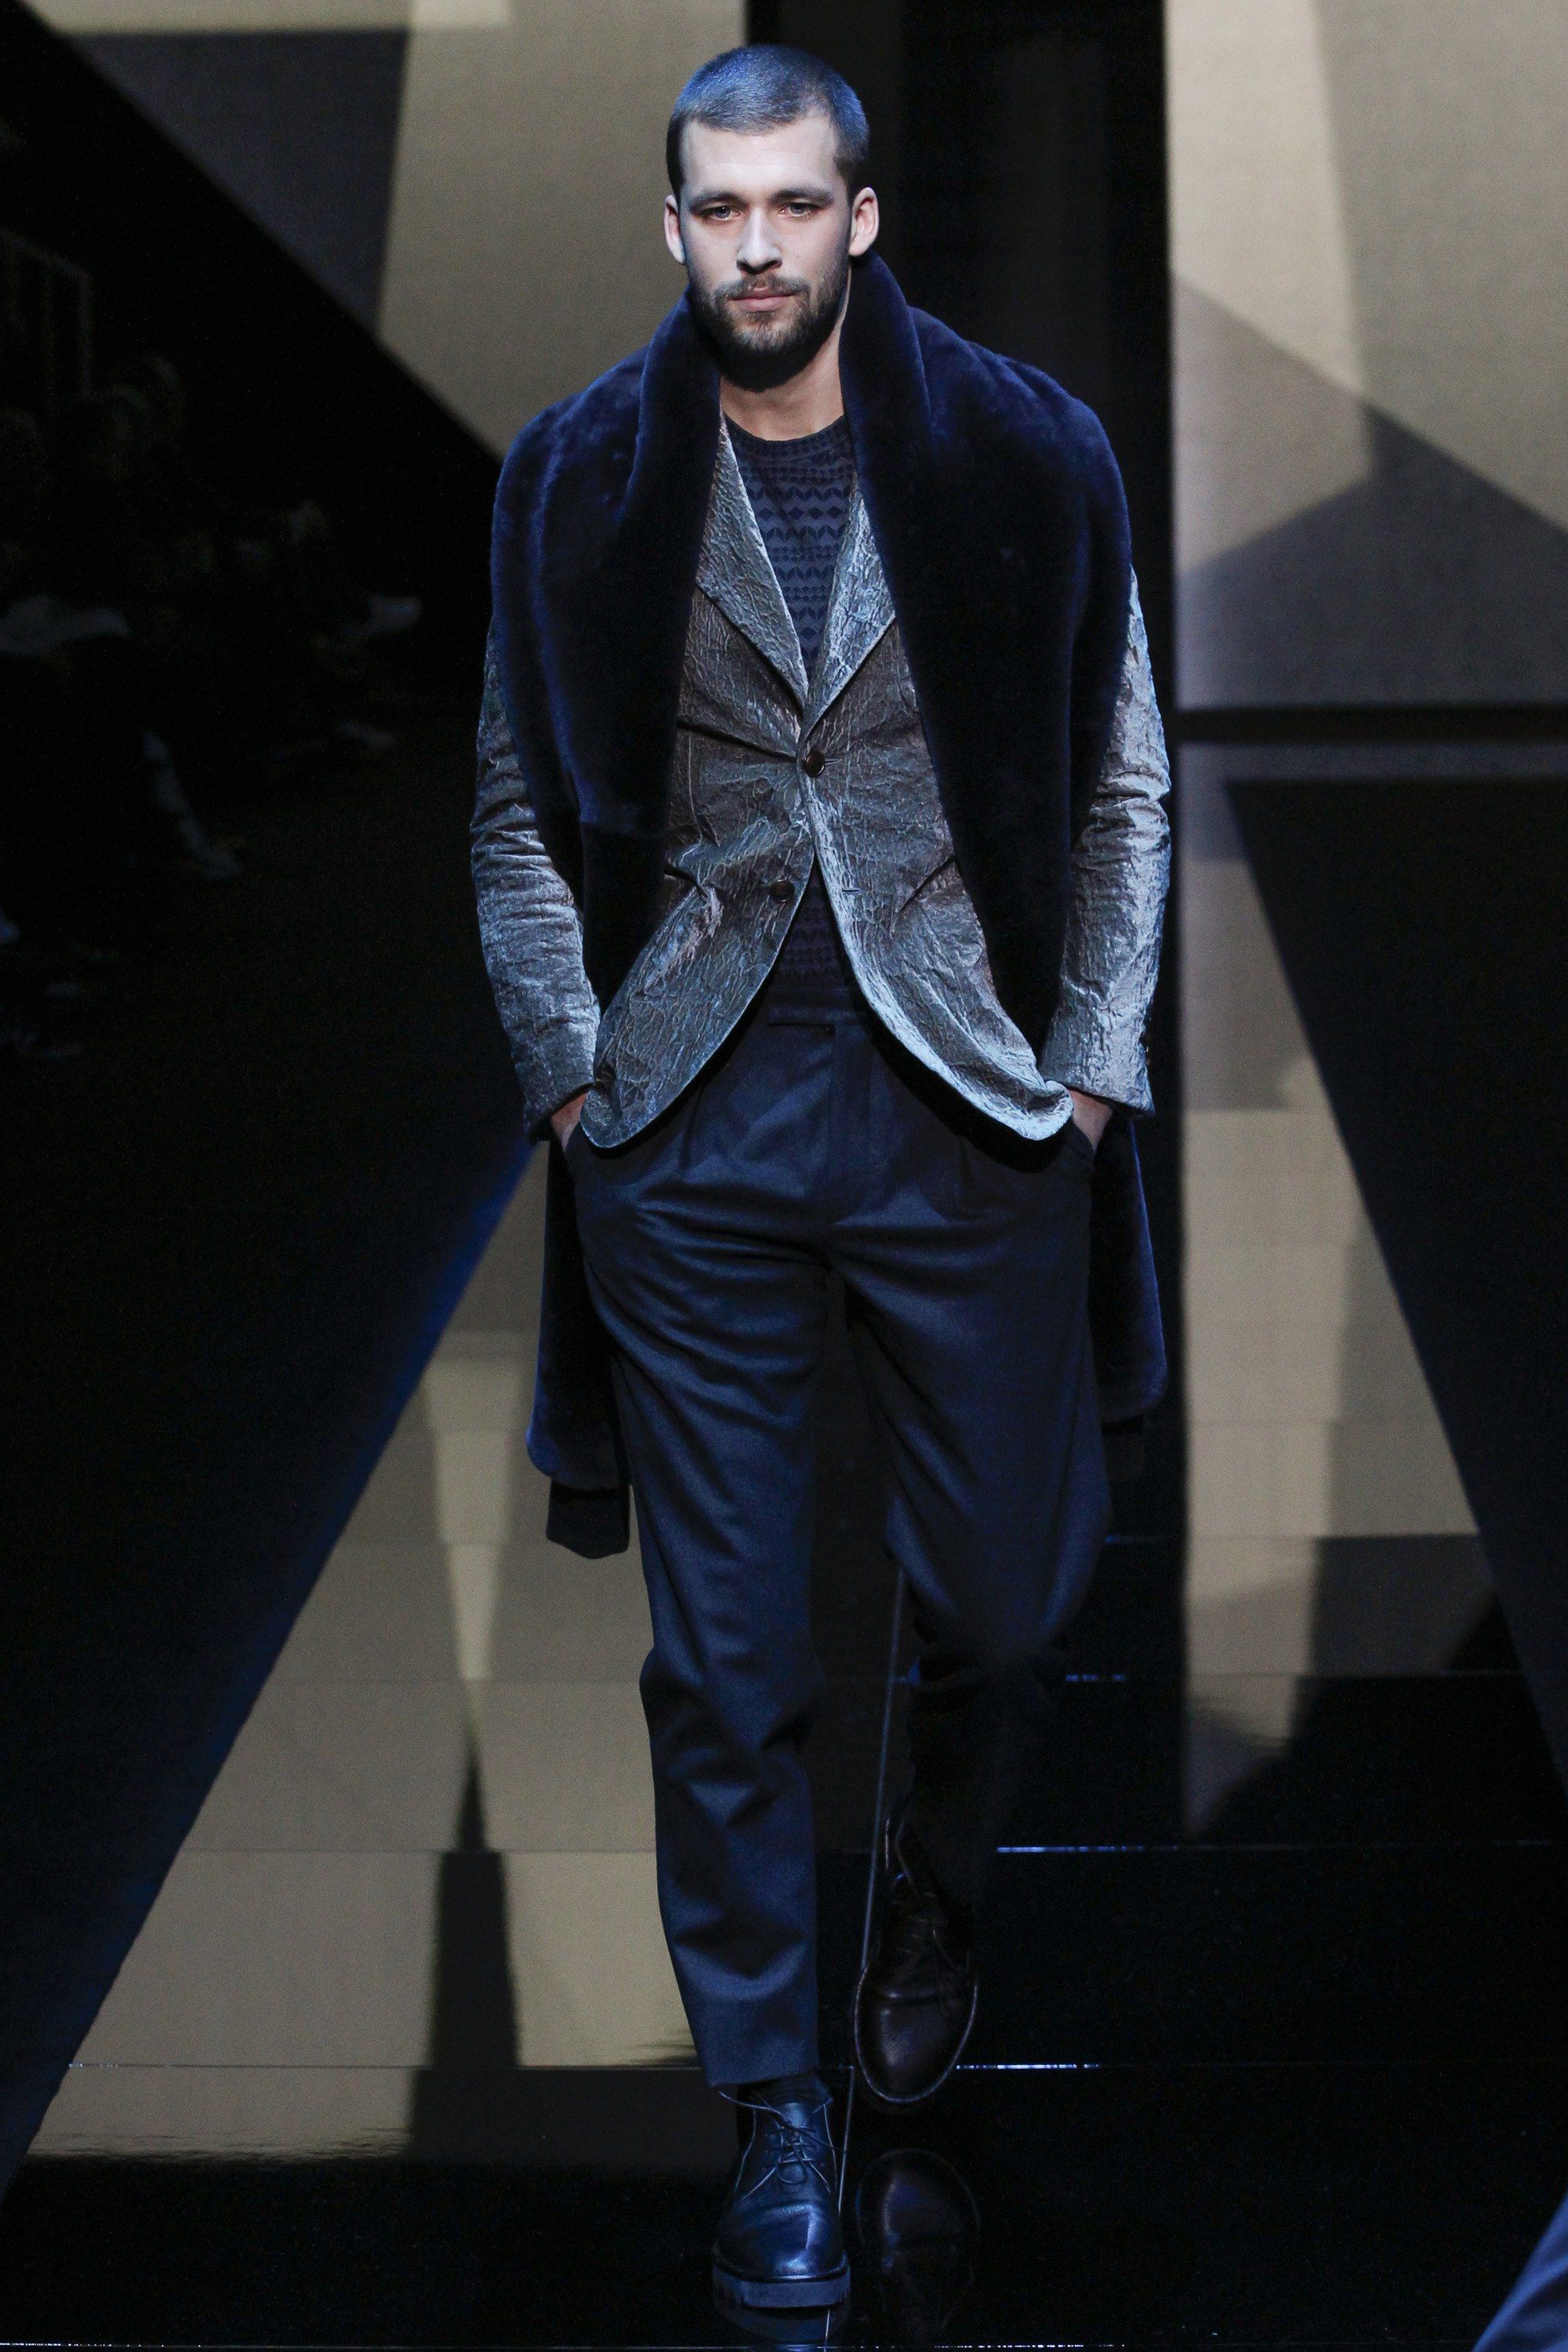 Giorgio Armani Fall 2017 Menswear Collection Photos - Vogue badc682a8dcc